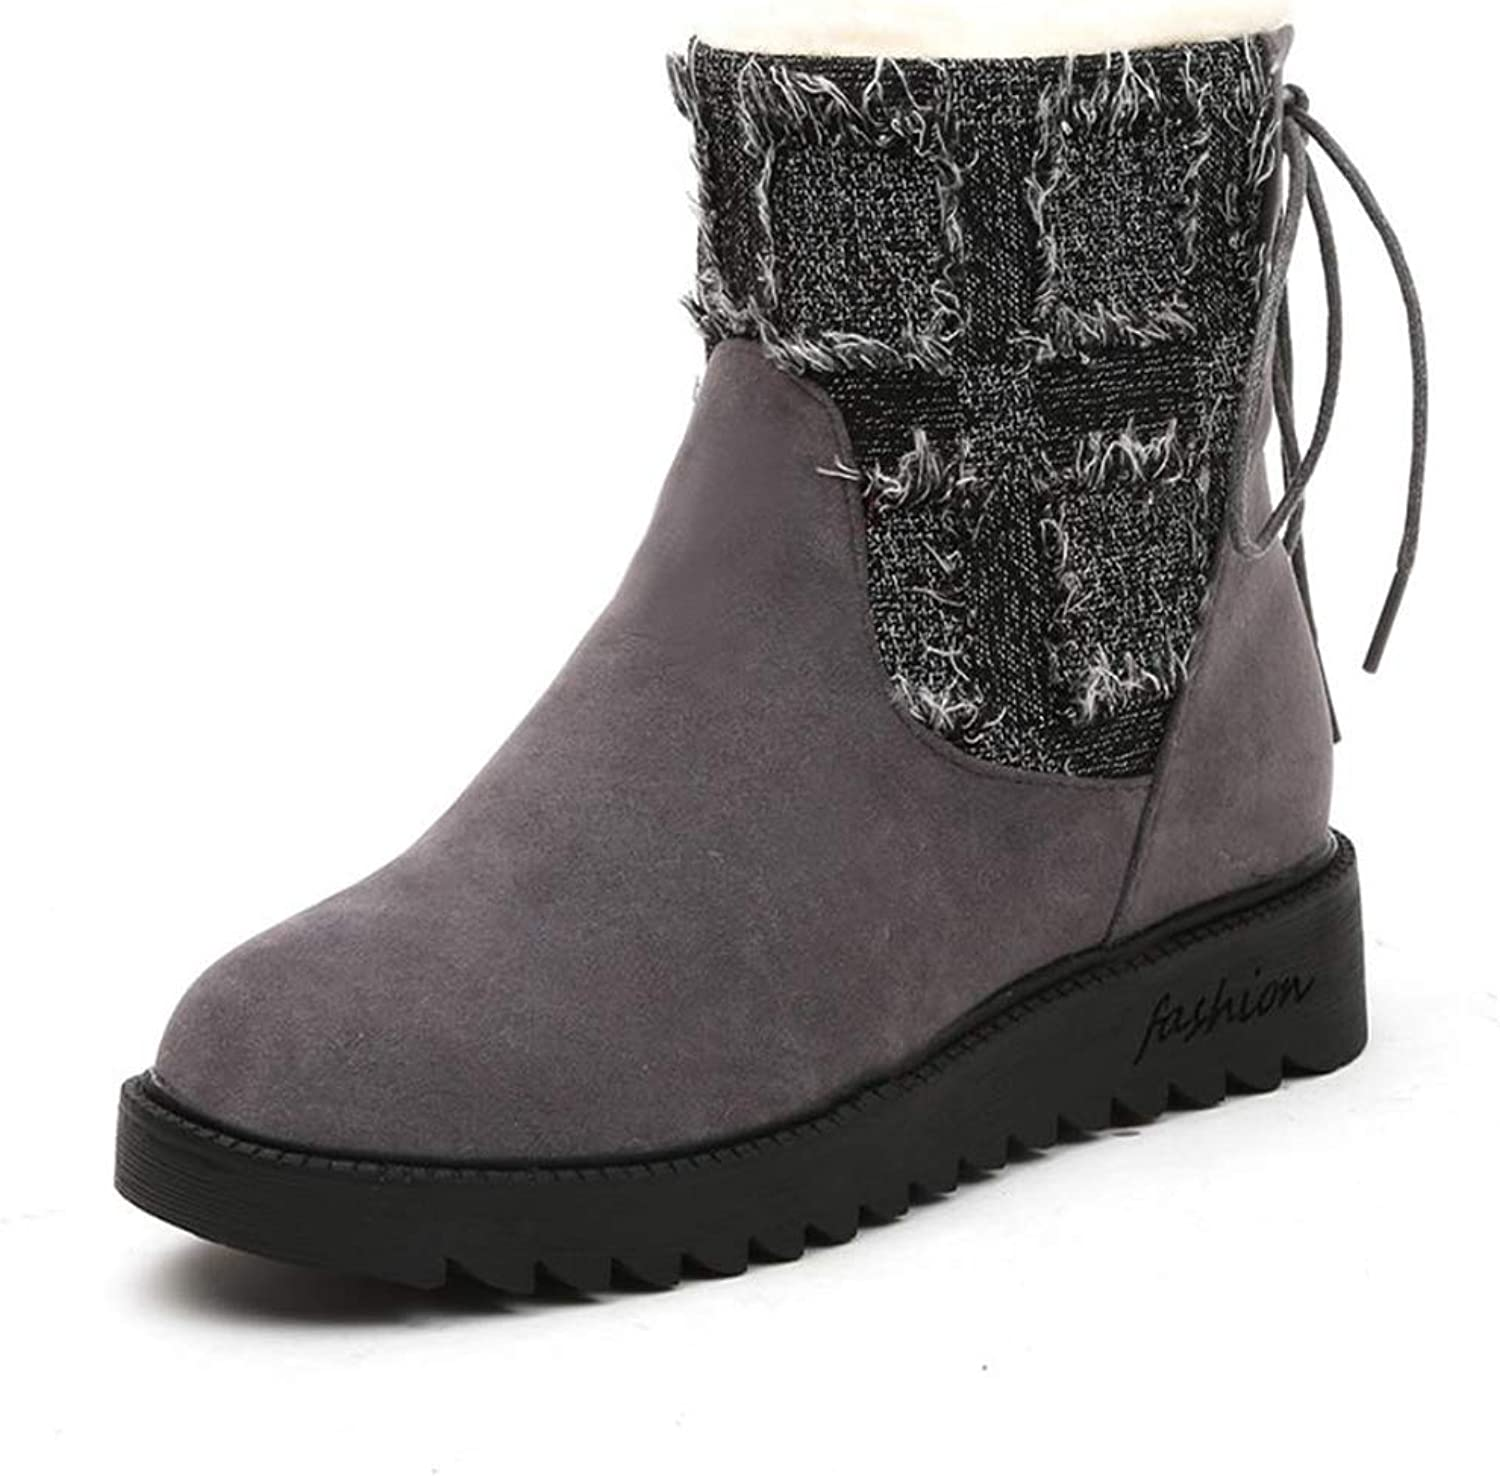 Gusha Women's Classic Snow Boots Warm shoes Winter Booties